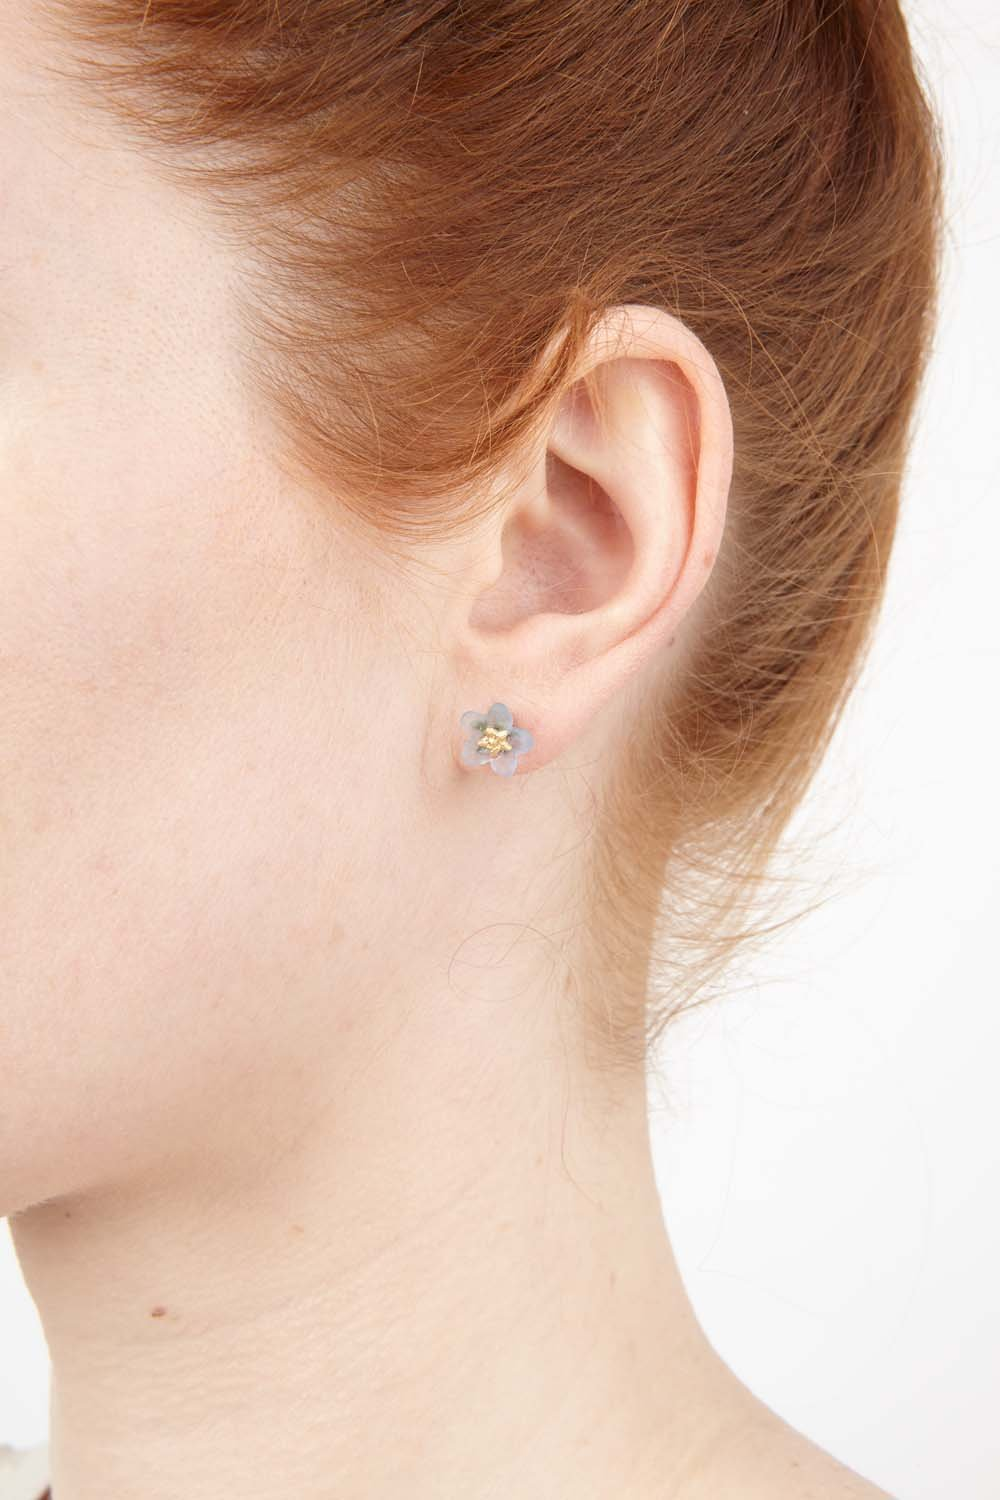 Forget Me Not Earrings - Petite Post